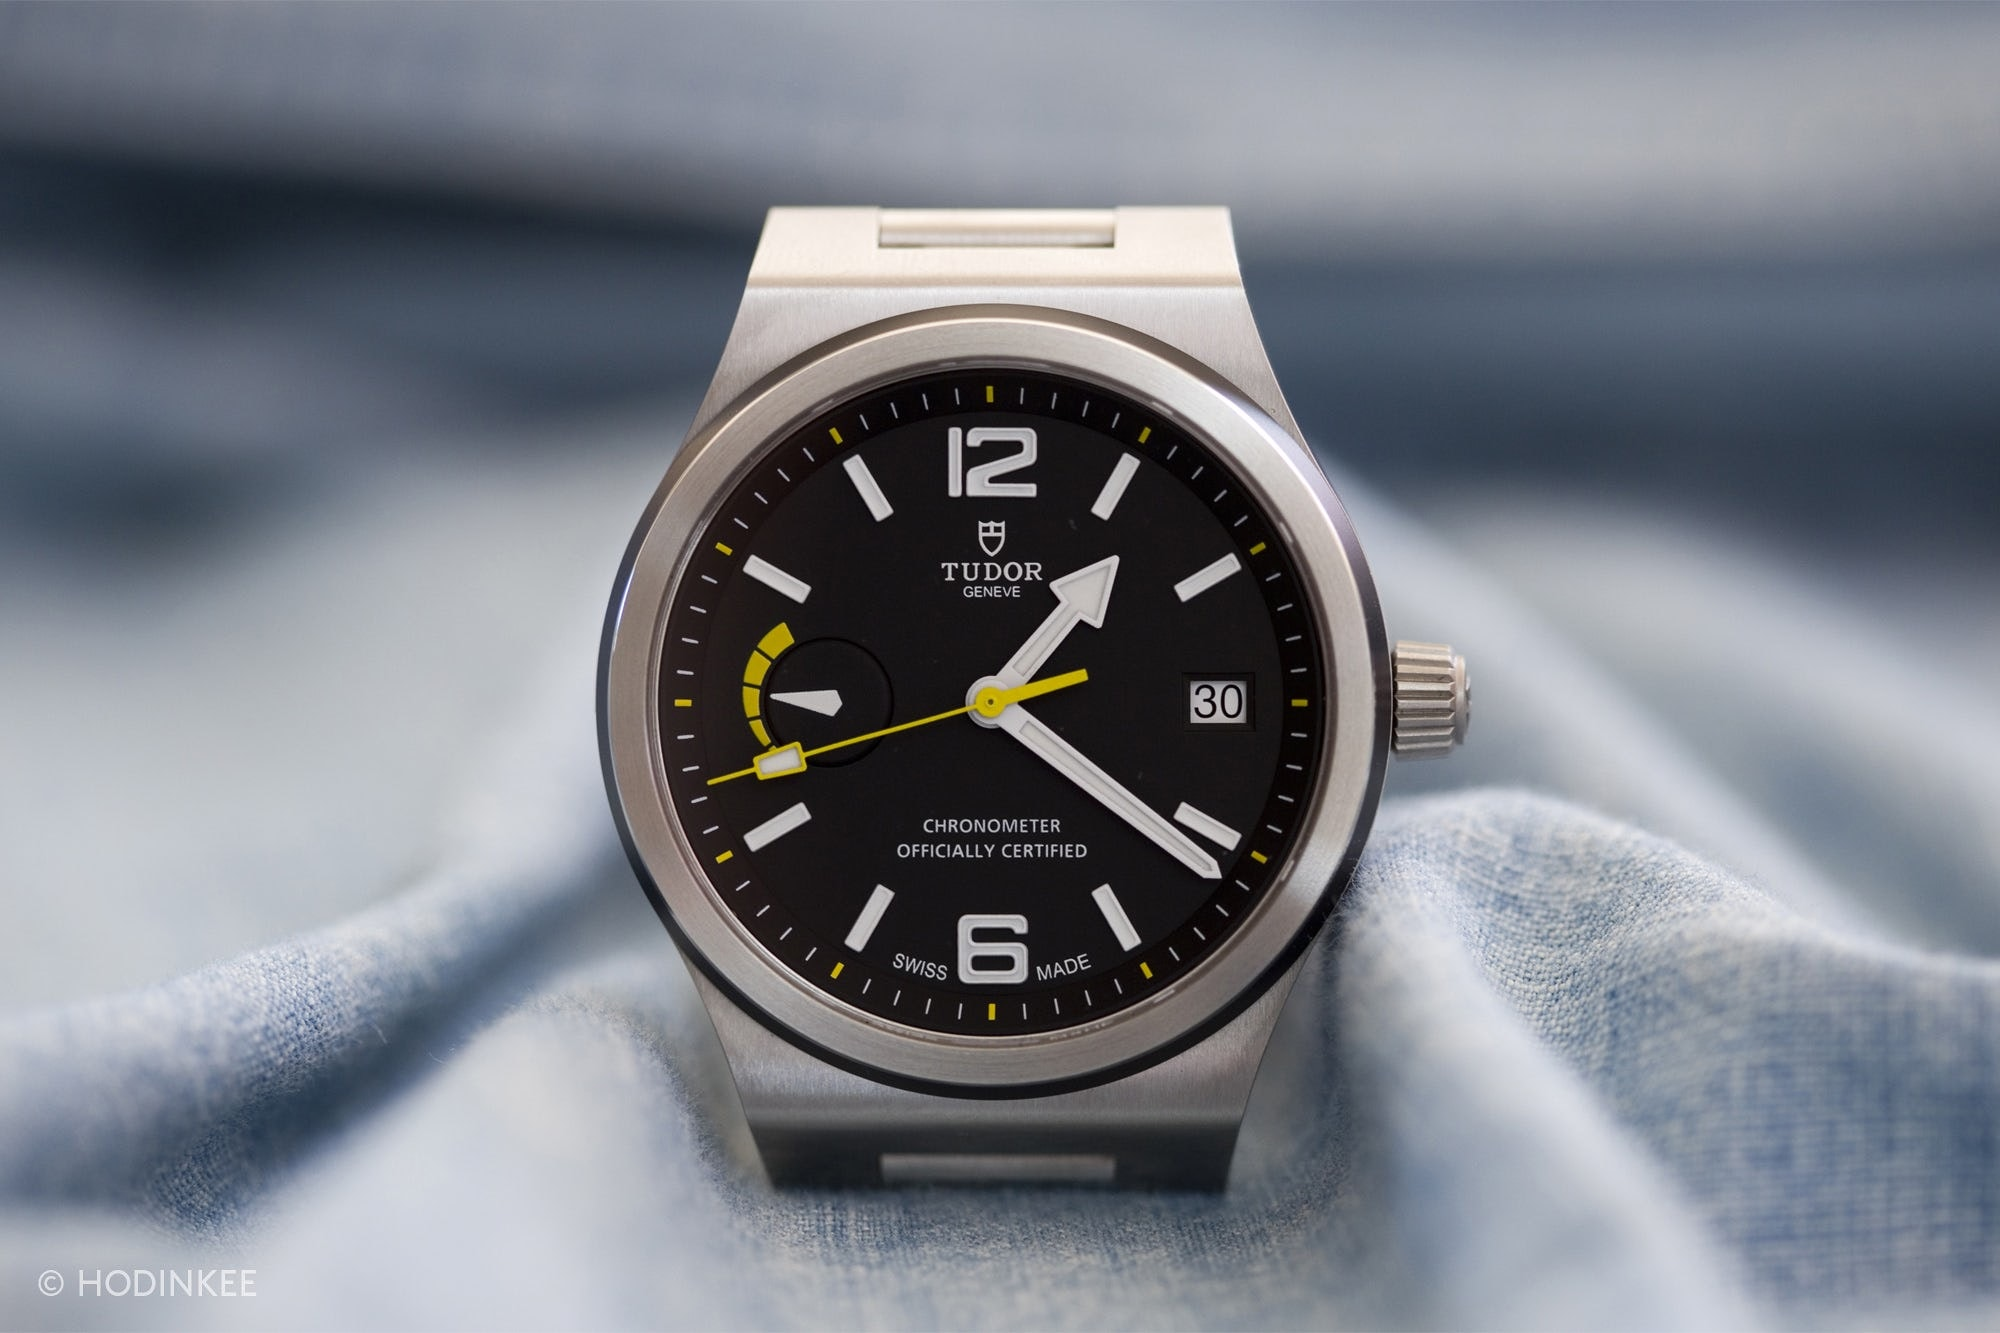 A Week On The Wrist: The Baume & Mercier Clifton Baumatic COSC tnf